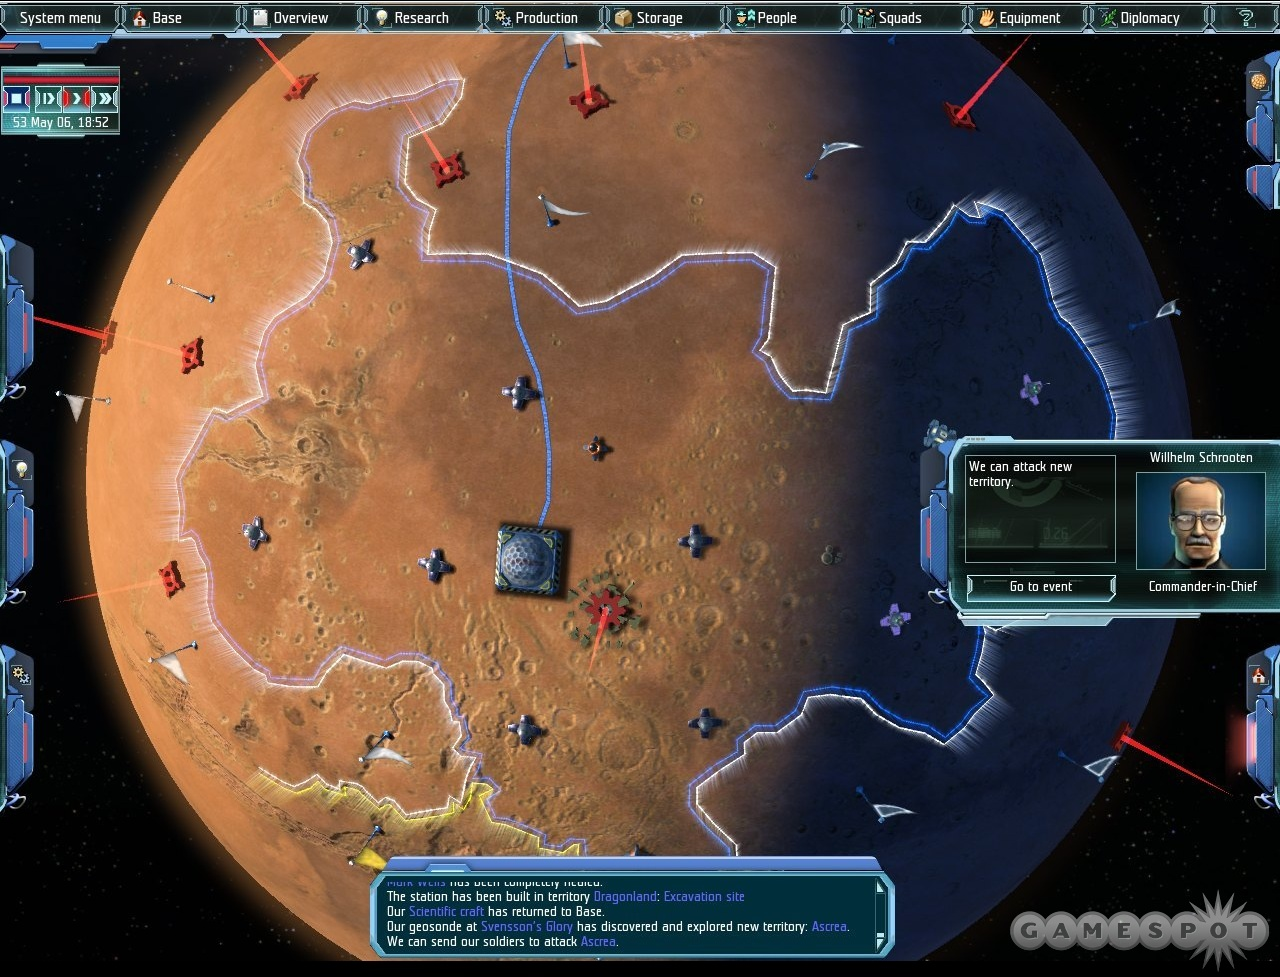 Look familiar? As with the standard X-COM formula, the default view here is a globe that highlights your bases and the alien hot spots.